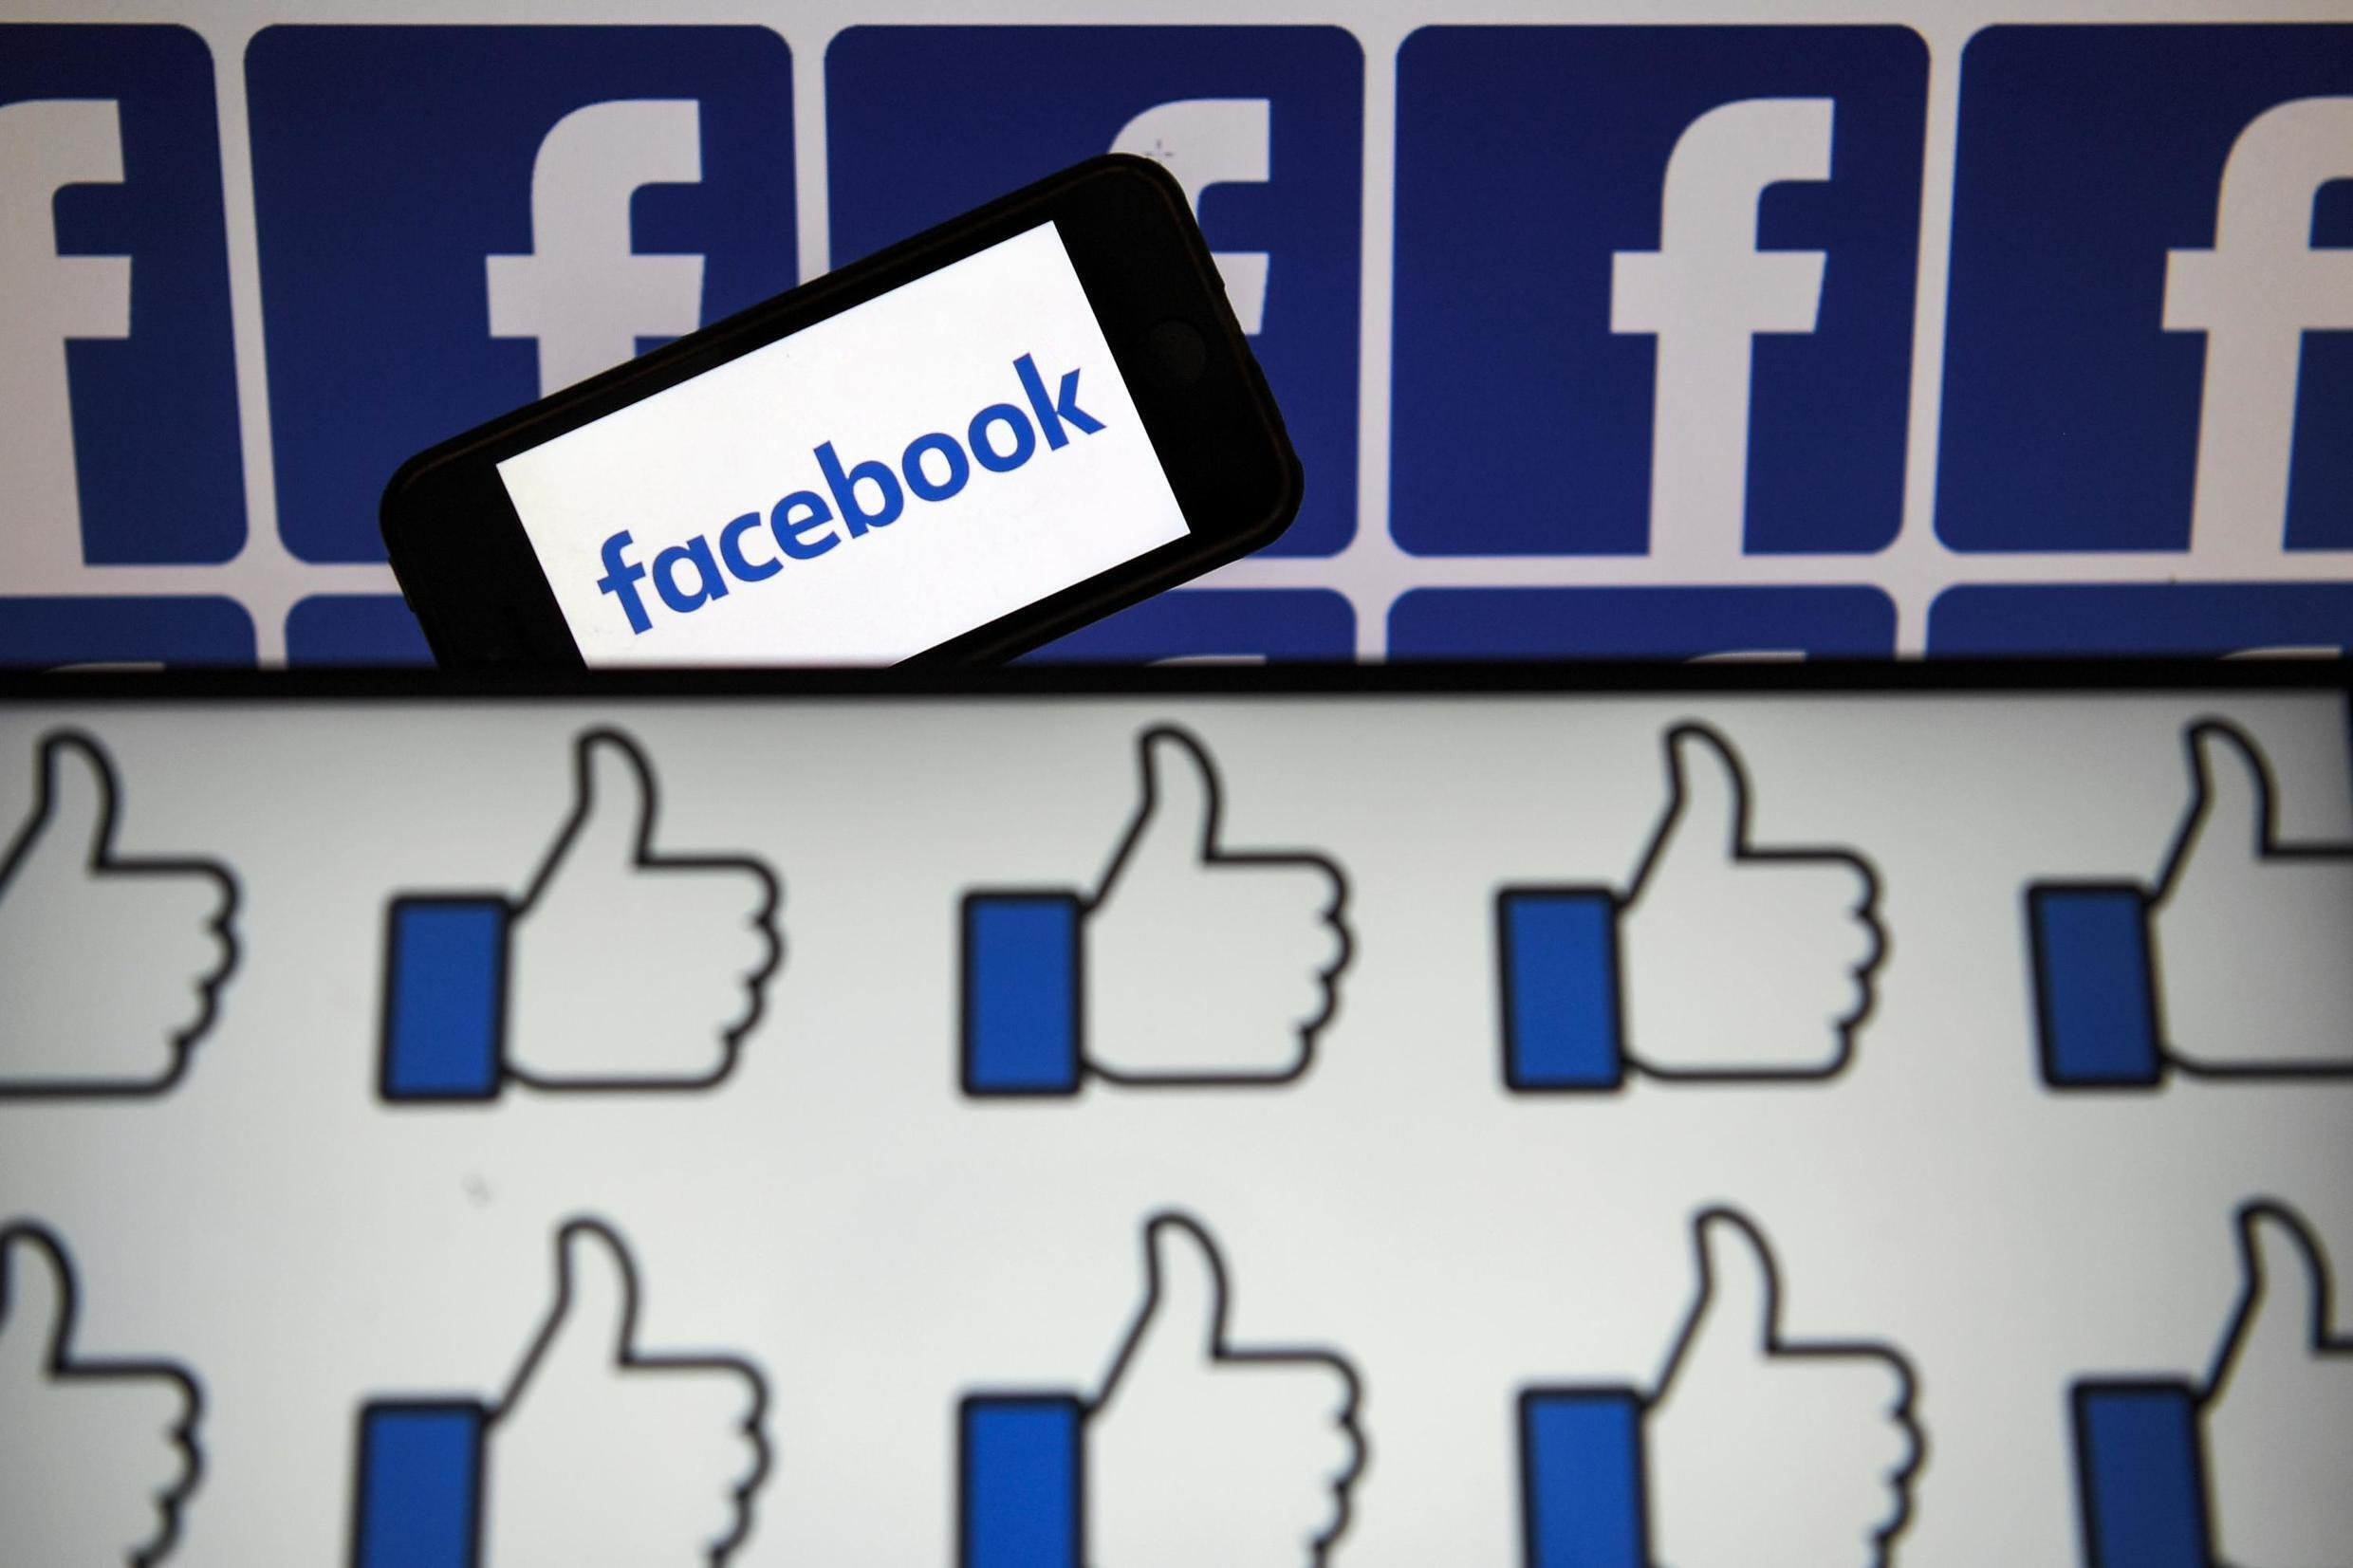 Online shoppers must be told their Facebook 'like' of the web retailer sends personal data to the Facebook subsidiary, says EU court